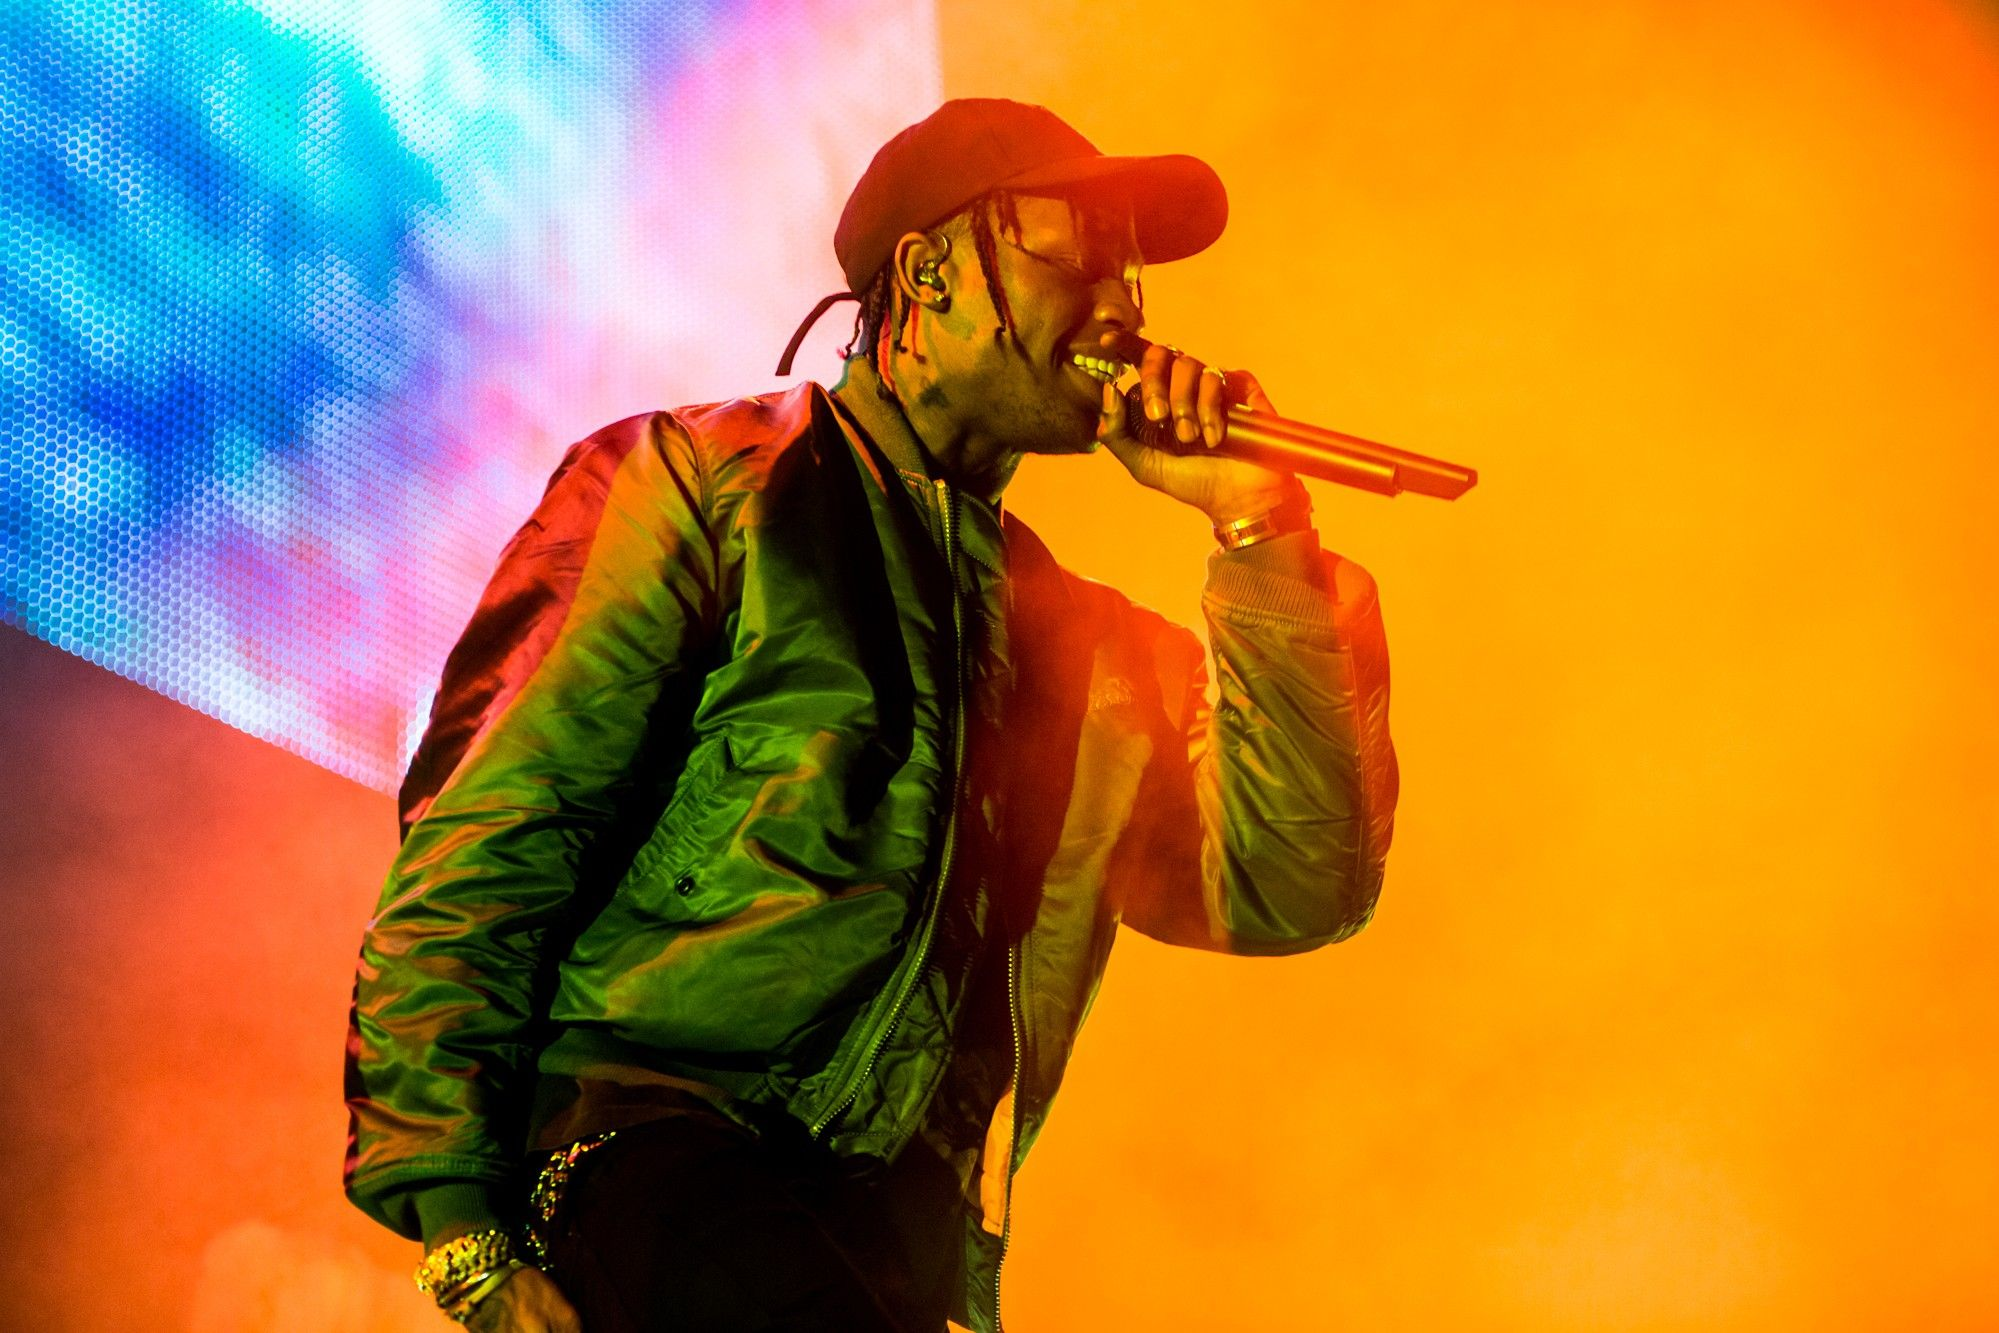 Travis Scott Wallpaper Group 36 Download For Free Travis Scott Wallpapers Travis Scott Travis Scott Outfits